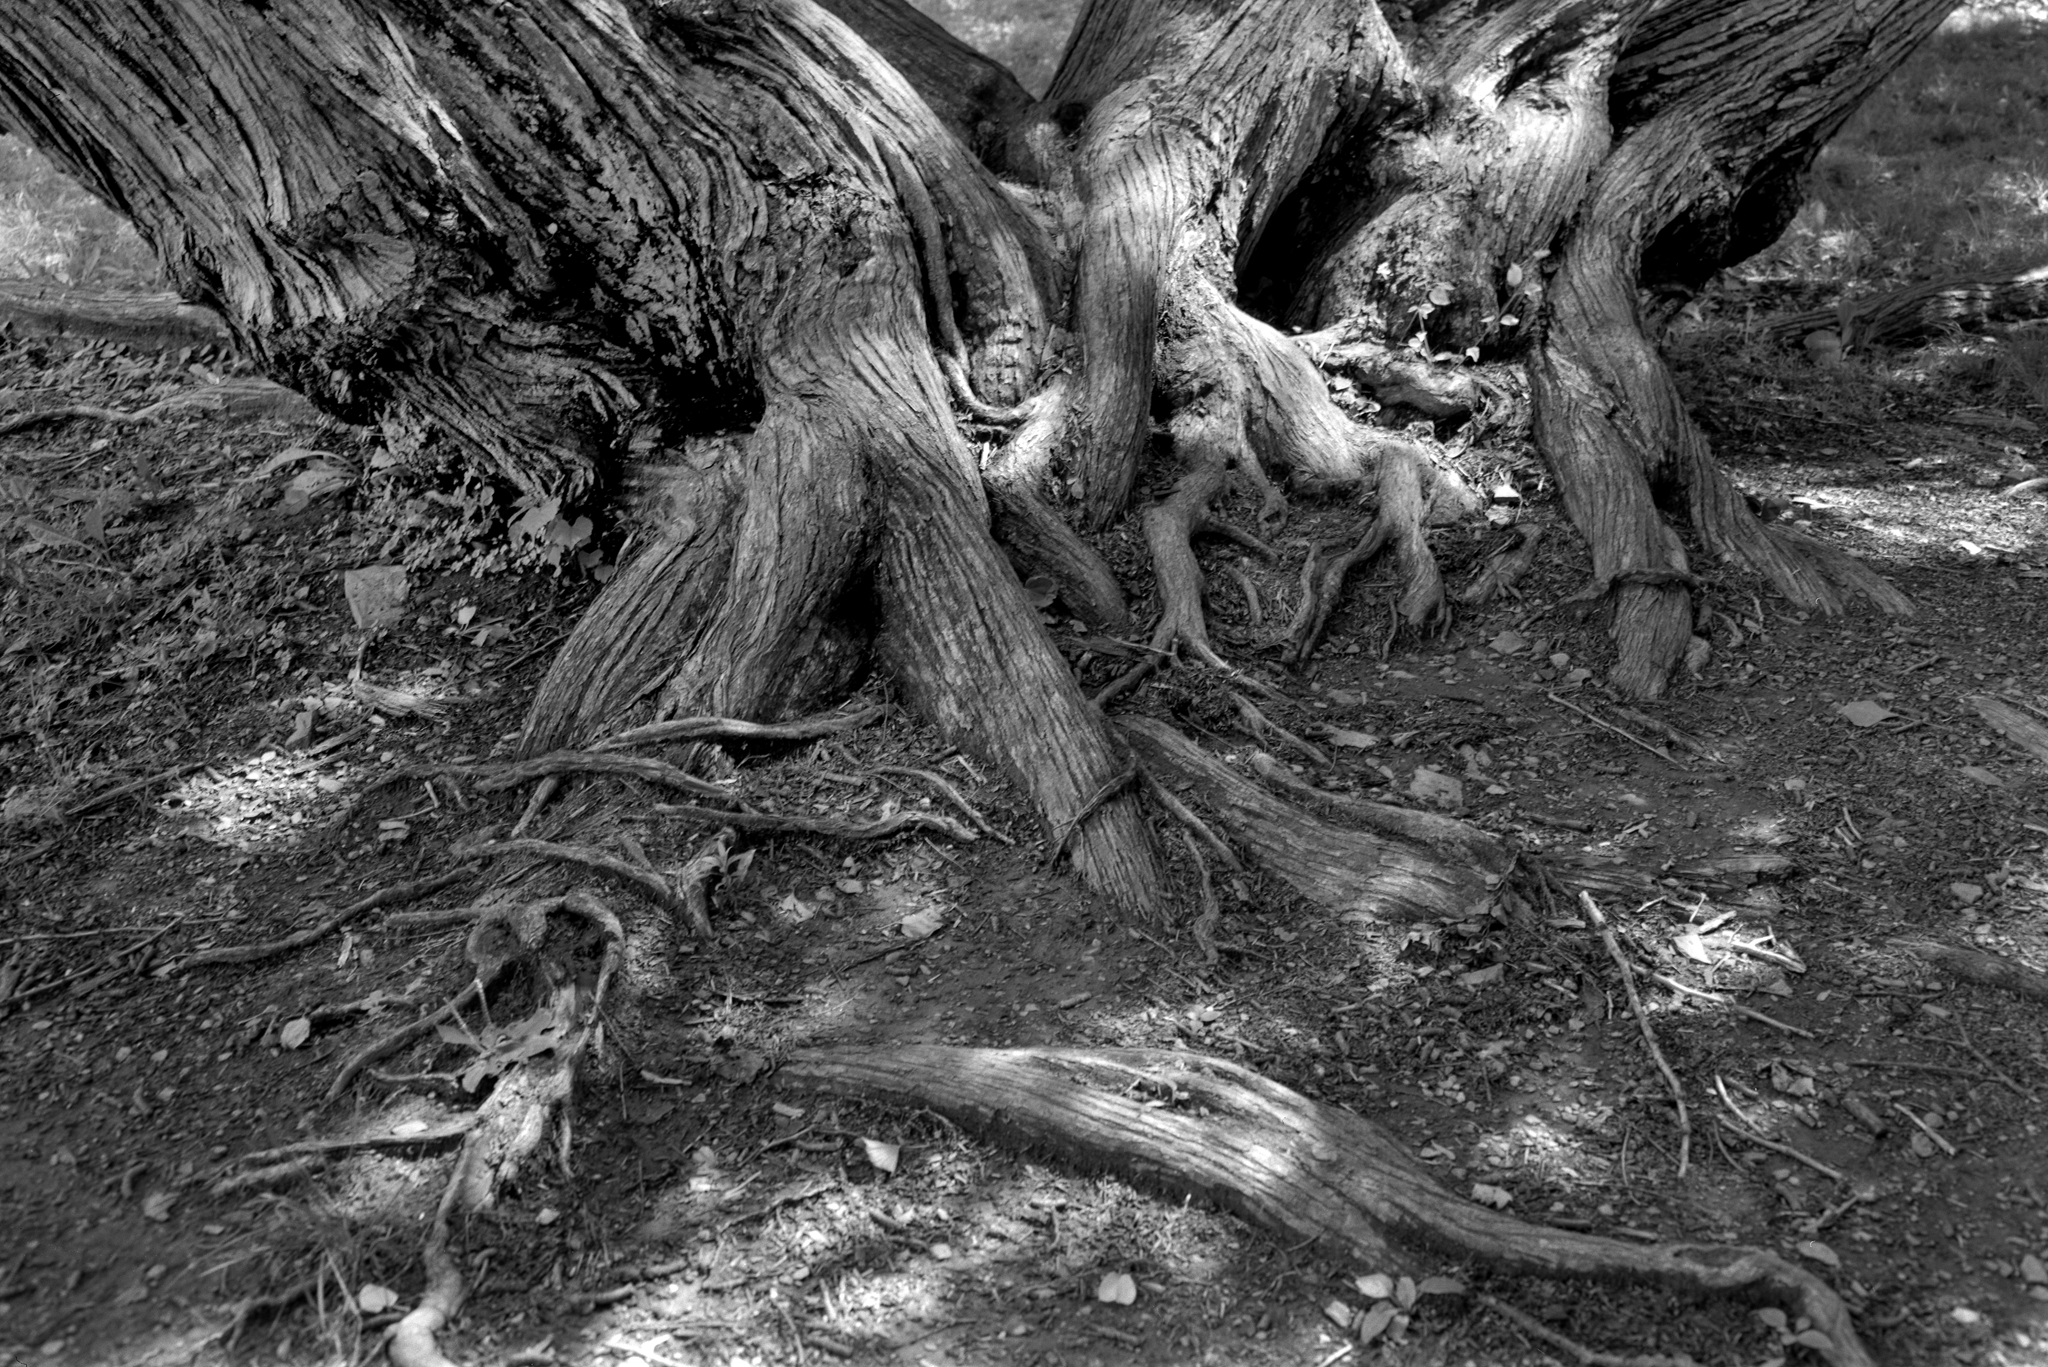 4x5_for_365_project_0188_Reading_Museum_tree_roots.png